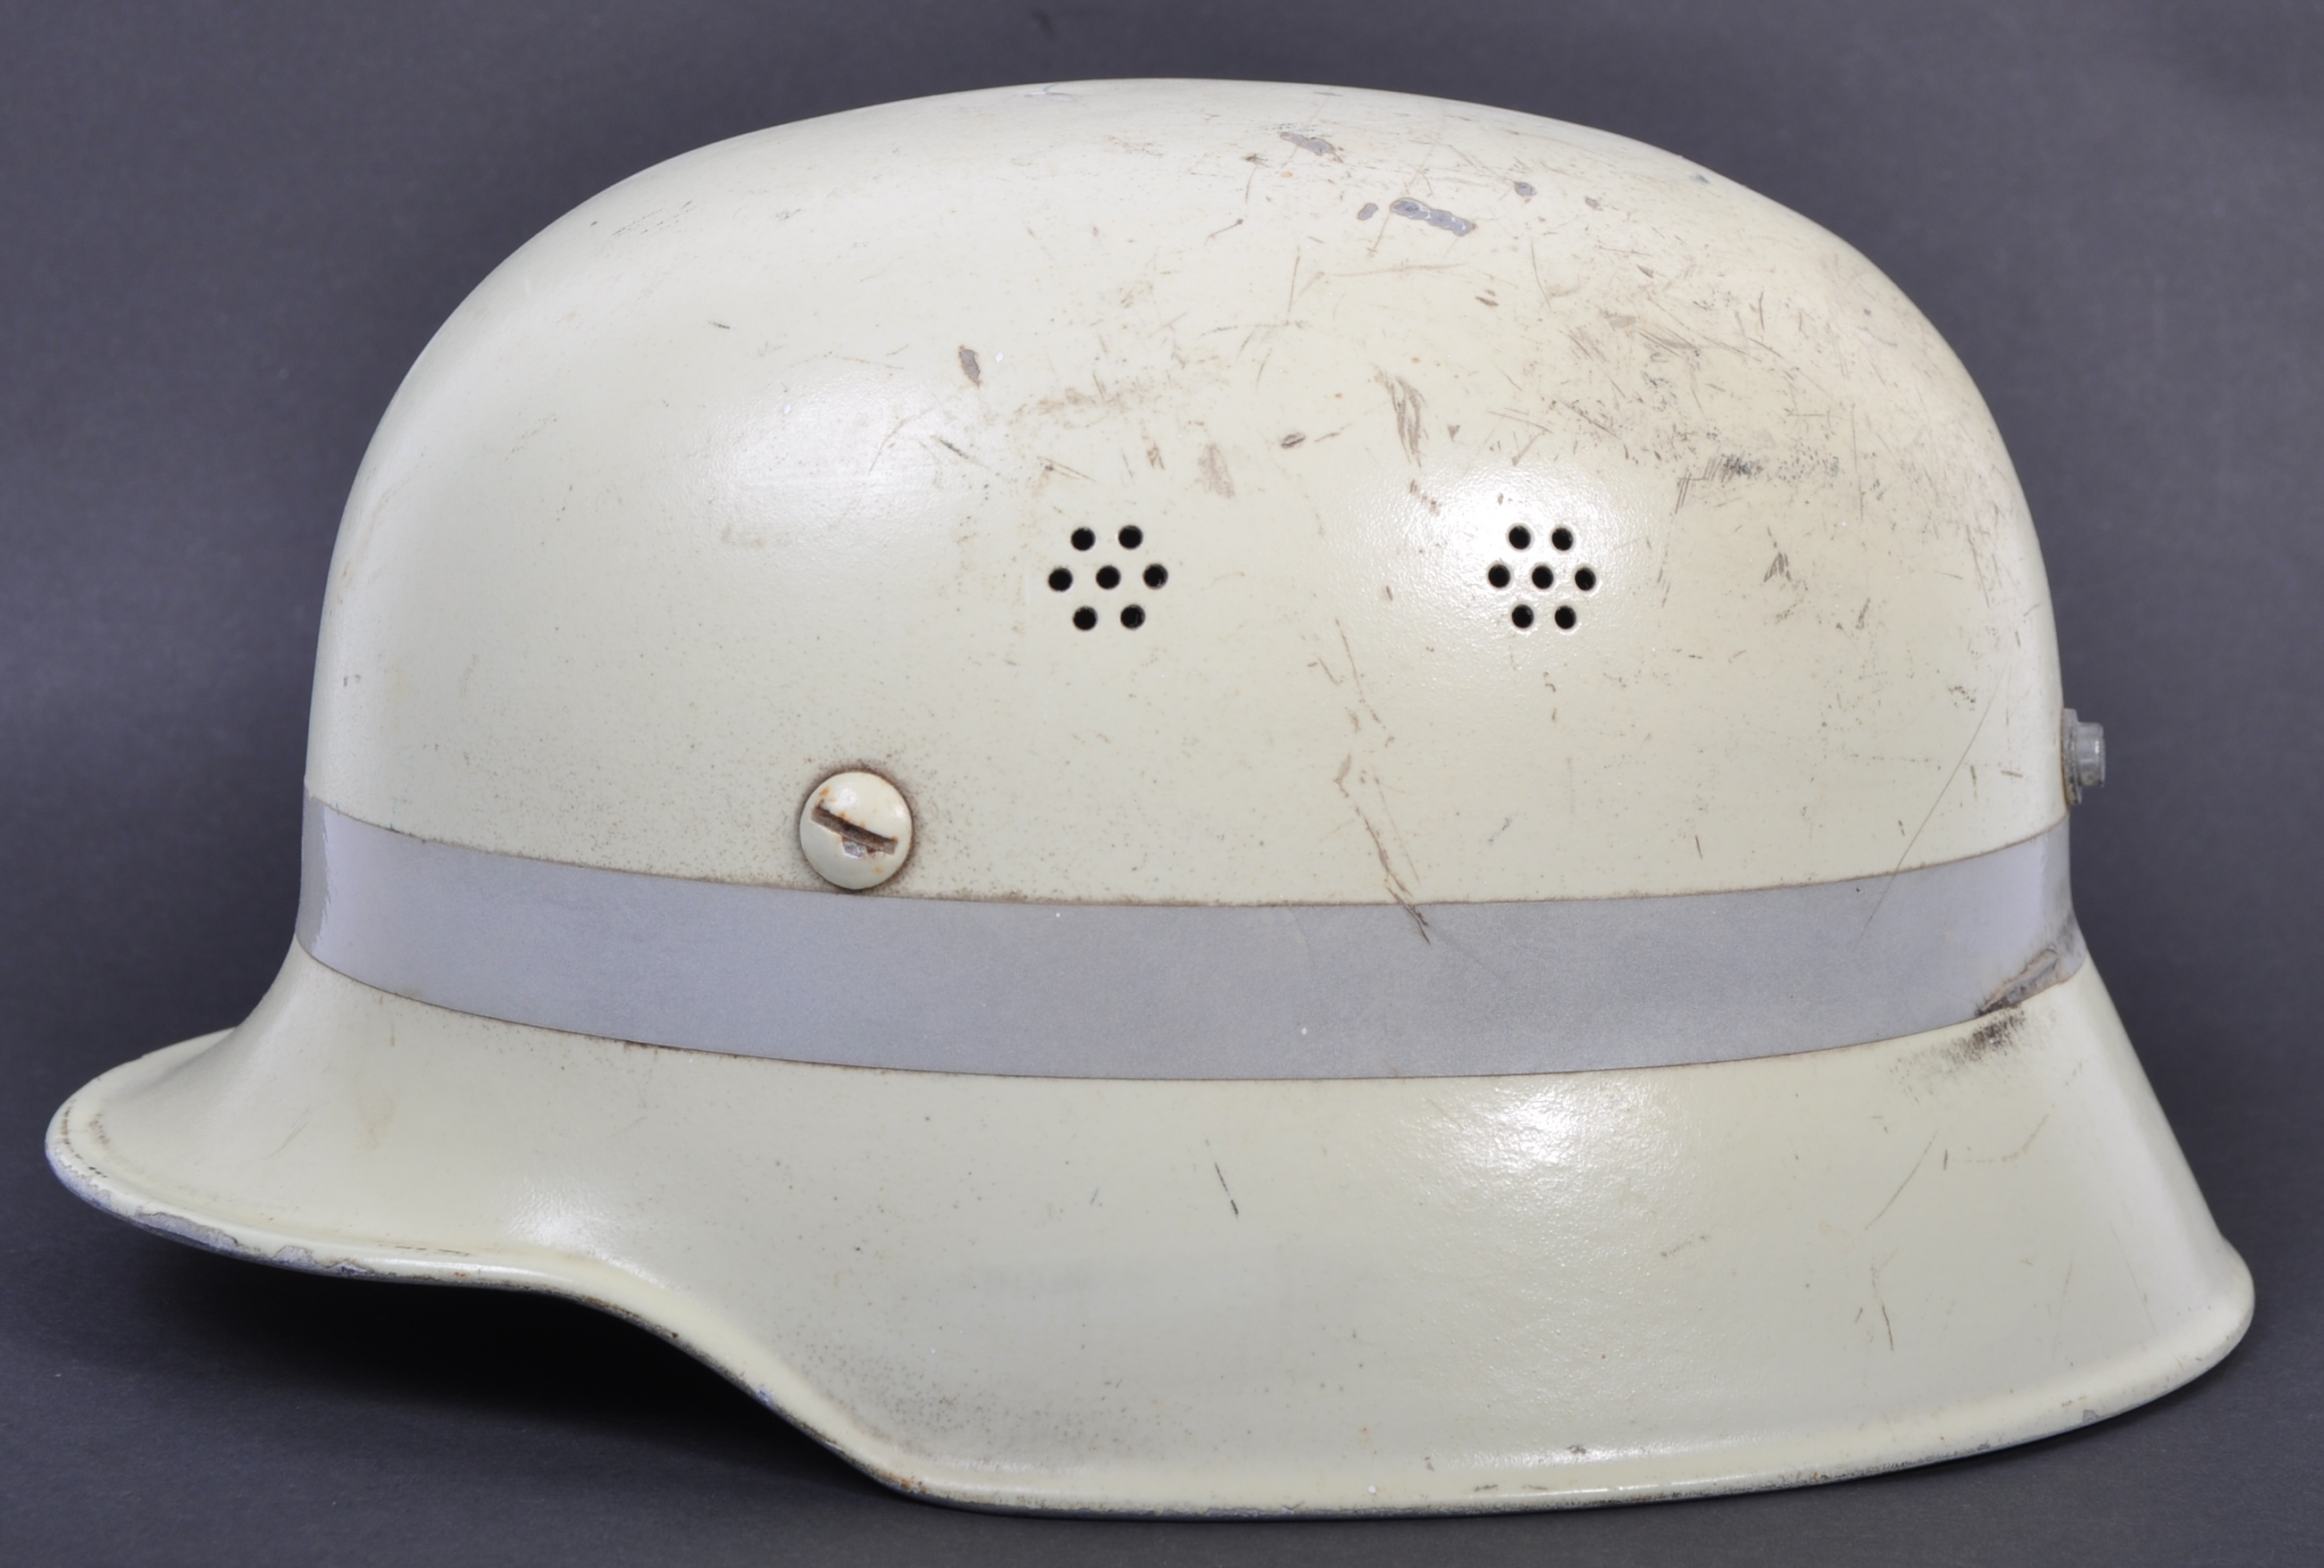 RARE POST-WWII GERMAN LUMINOUS FIRE FIGHTER'S HELM - Image 2 of 6